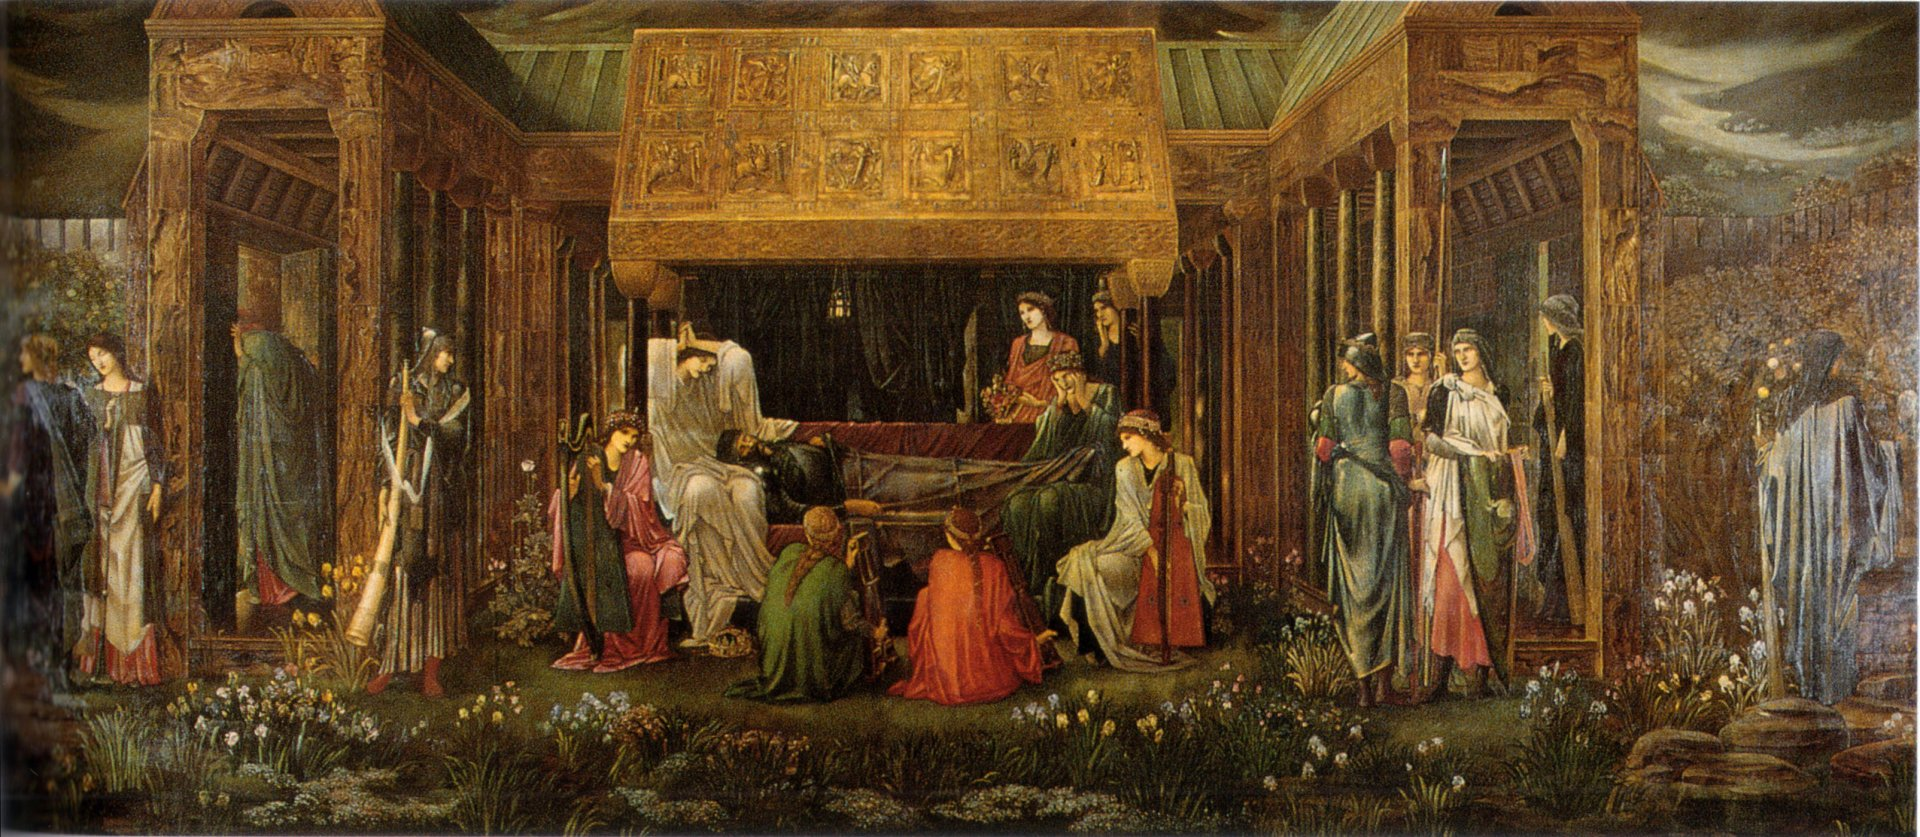 edward_burne_jones_17_last_sleep_of_arthur_in_avalon.jpg